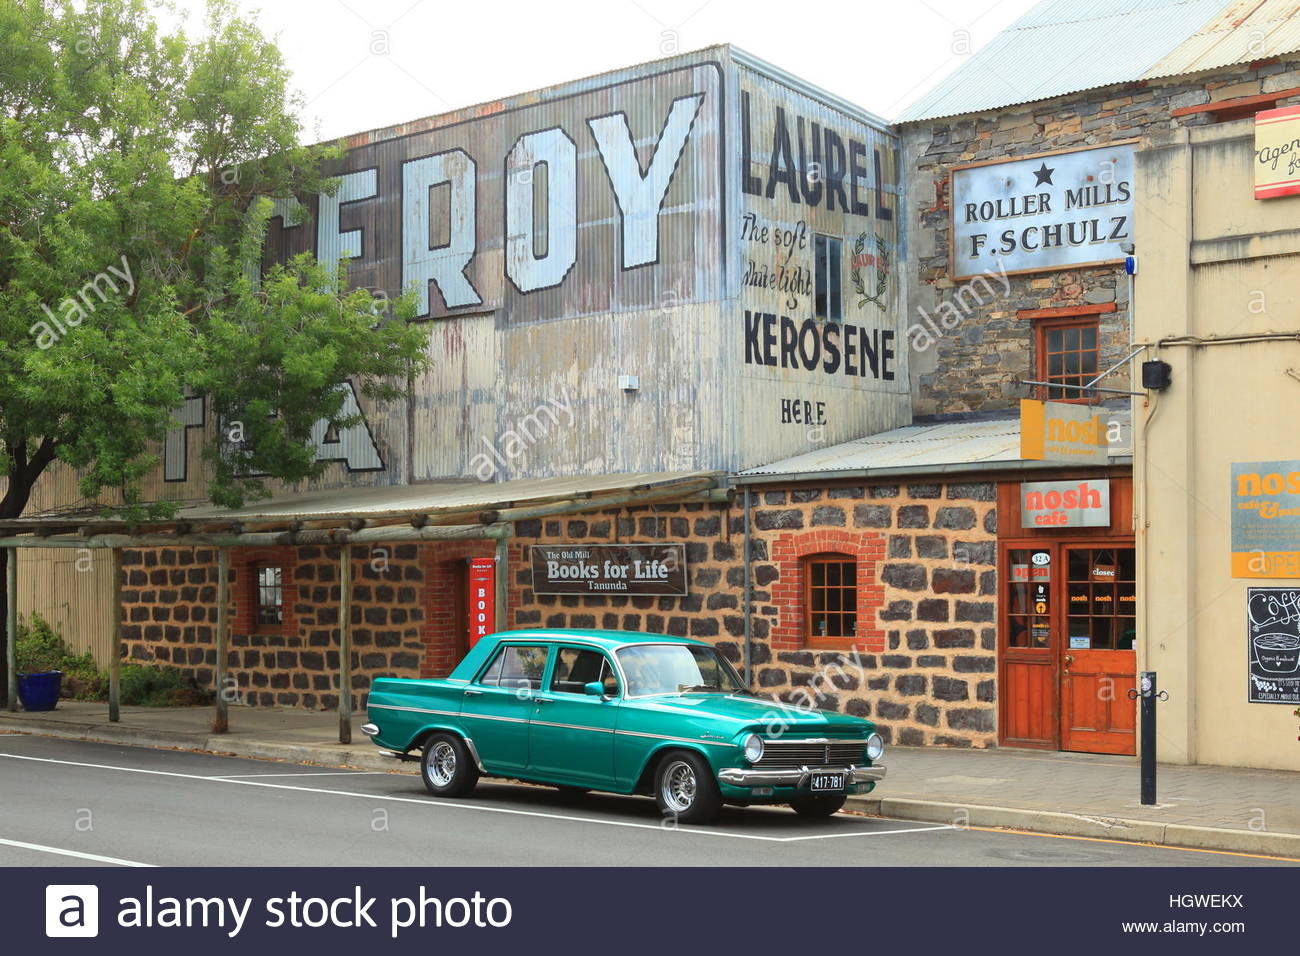 A 1960's car parked outside the cafe 'Nosh' in Tanunda, Barossa Valley, South Australia January 2017 - Stock Image